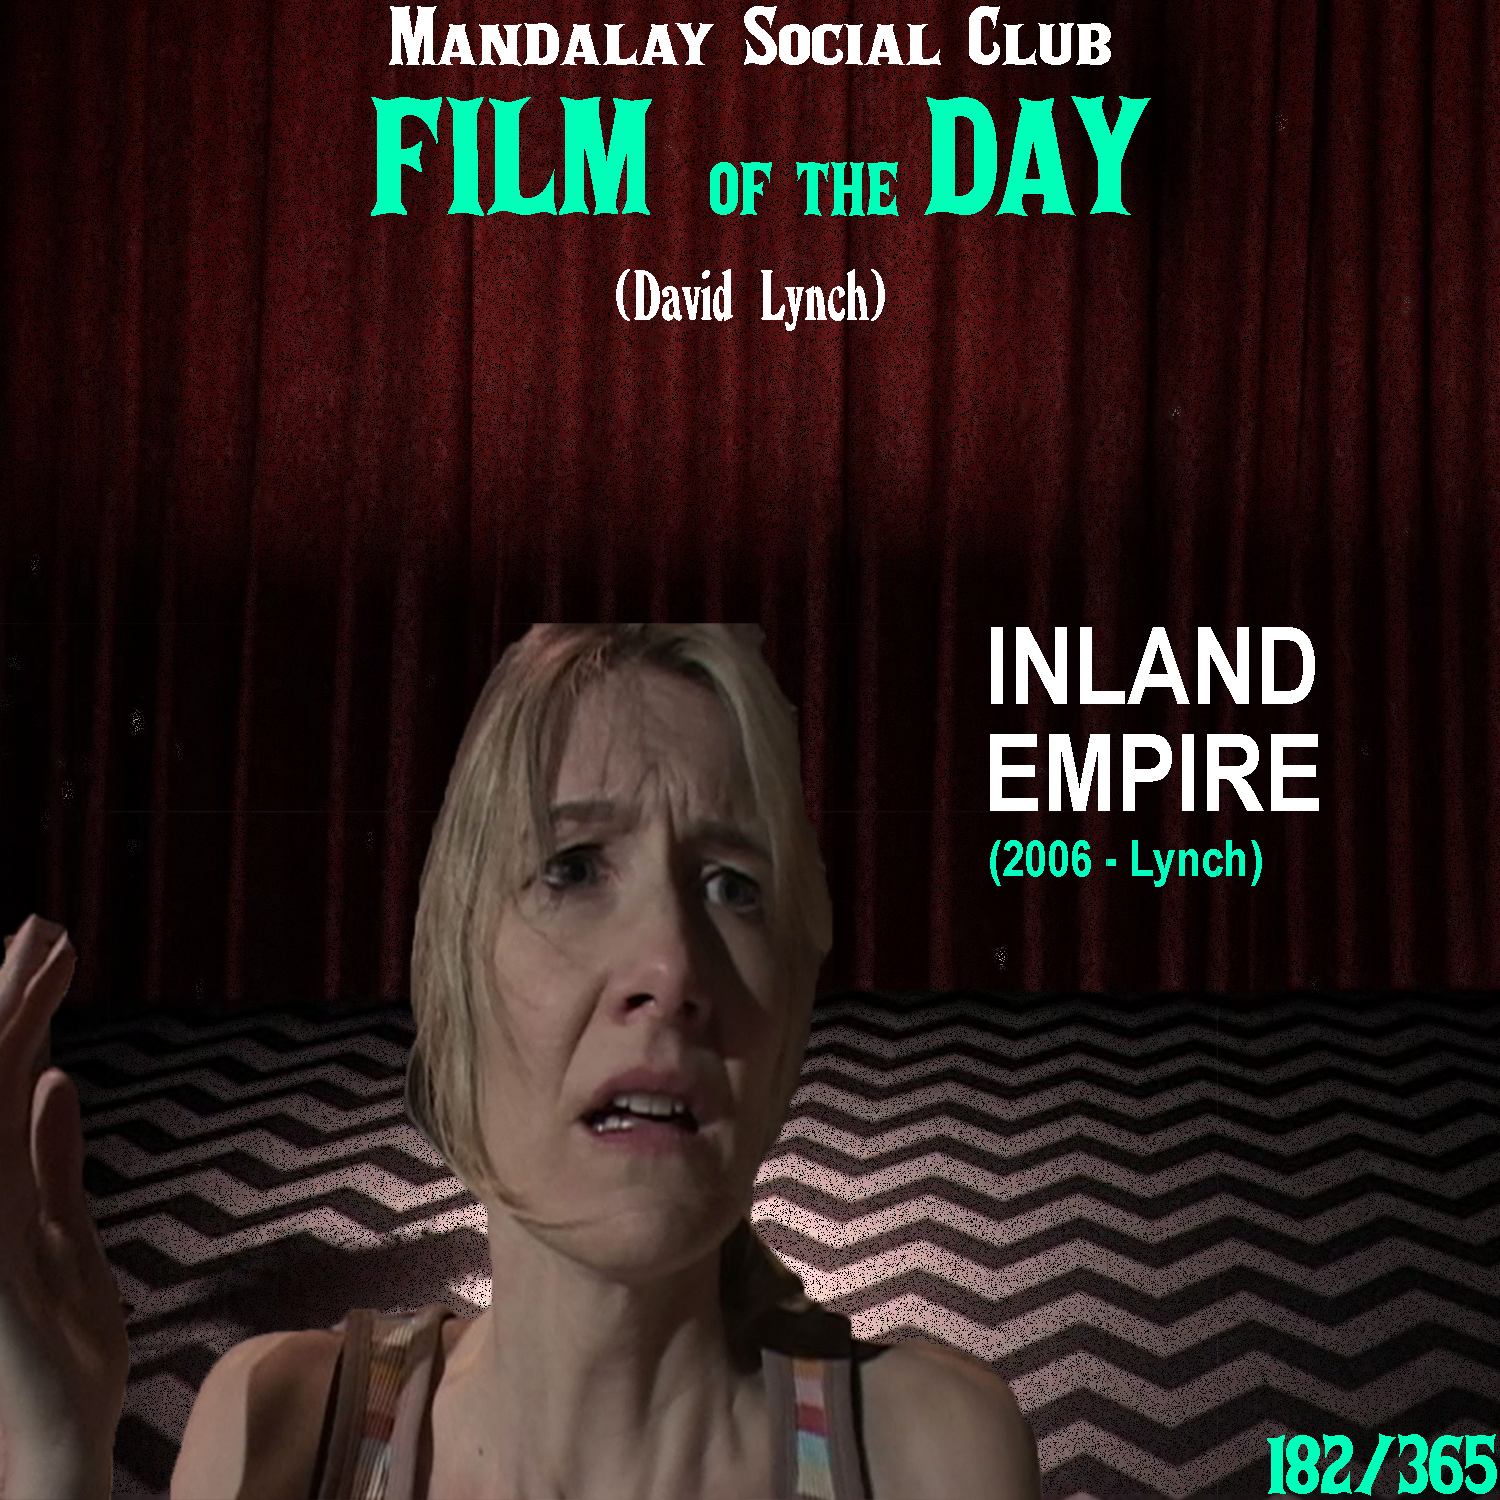 INLAND EMPIRE     (dir. David Lynch)   I begin writing this review with a deep sigh. The last film David released,  Inland Empire , is not only David's most convoluted and dense film, but quite possibly the most incomprehensible film I've ever seen.  I can't do much in ways of giving a synopsis other than note that Laura Vern plays an actress named Nikki who receives a strange premonition that she'll get a role in a film involving murder. Sure enough, the role she receives for a drama film, slowly reveals evil within. On the set she begins an affair with her co-actor Devon, played by Justin Theroux. From this point on, a series of strange vignettes and short films inter-cut the storyline with Nikki as she begins traveling through various storylines in what feels like a never ending stream of consciousness.  Now, I'm by no means saying that this is a bad film. However, it is incredibly difficult to sit through and watch. Beyond the impossible 'plot', David shot the film on a Standard Definition camcorder. The quality here is not great, yet it loans an interesting home-movie feel to it, which makes Inland Empire 100x creepier than if it were done professionally. However, the 3 hours run time drags on to the point of insanity and the pure expressionistic approach David took makes this a film  for  David and nobody else. Not even the true Lynch fans.    2/5     WATCH: Ok.Ru (FREE)